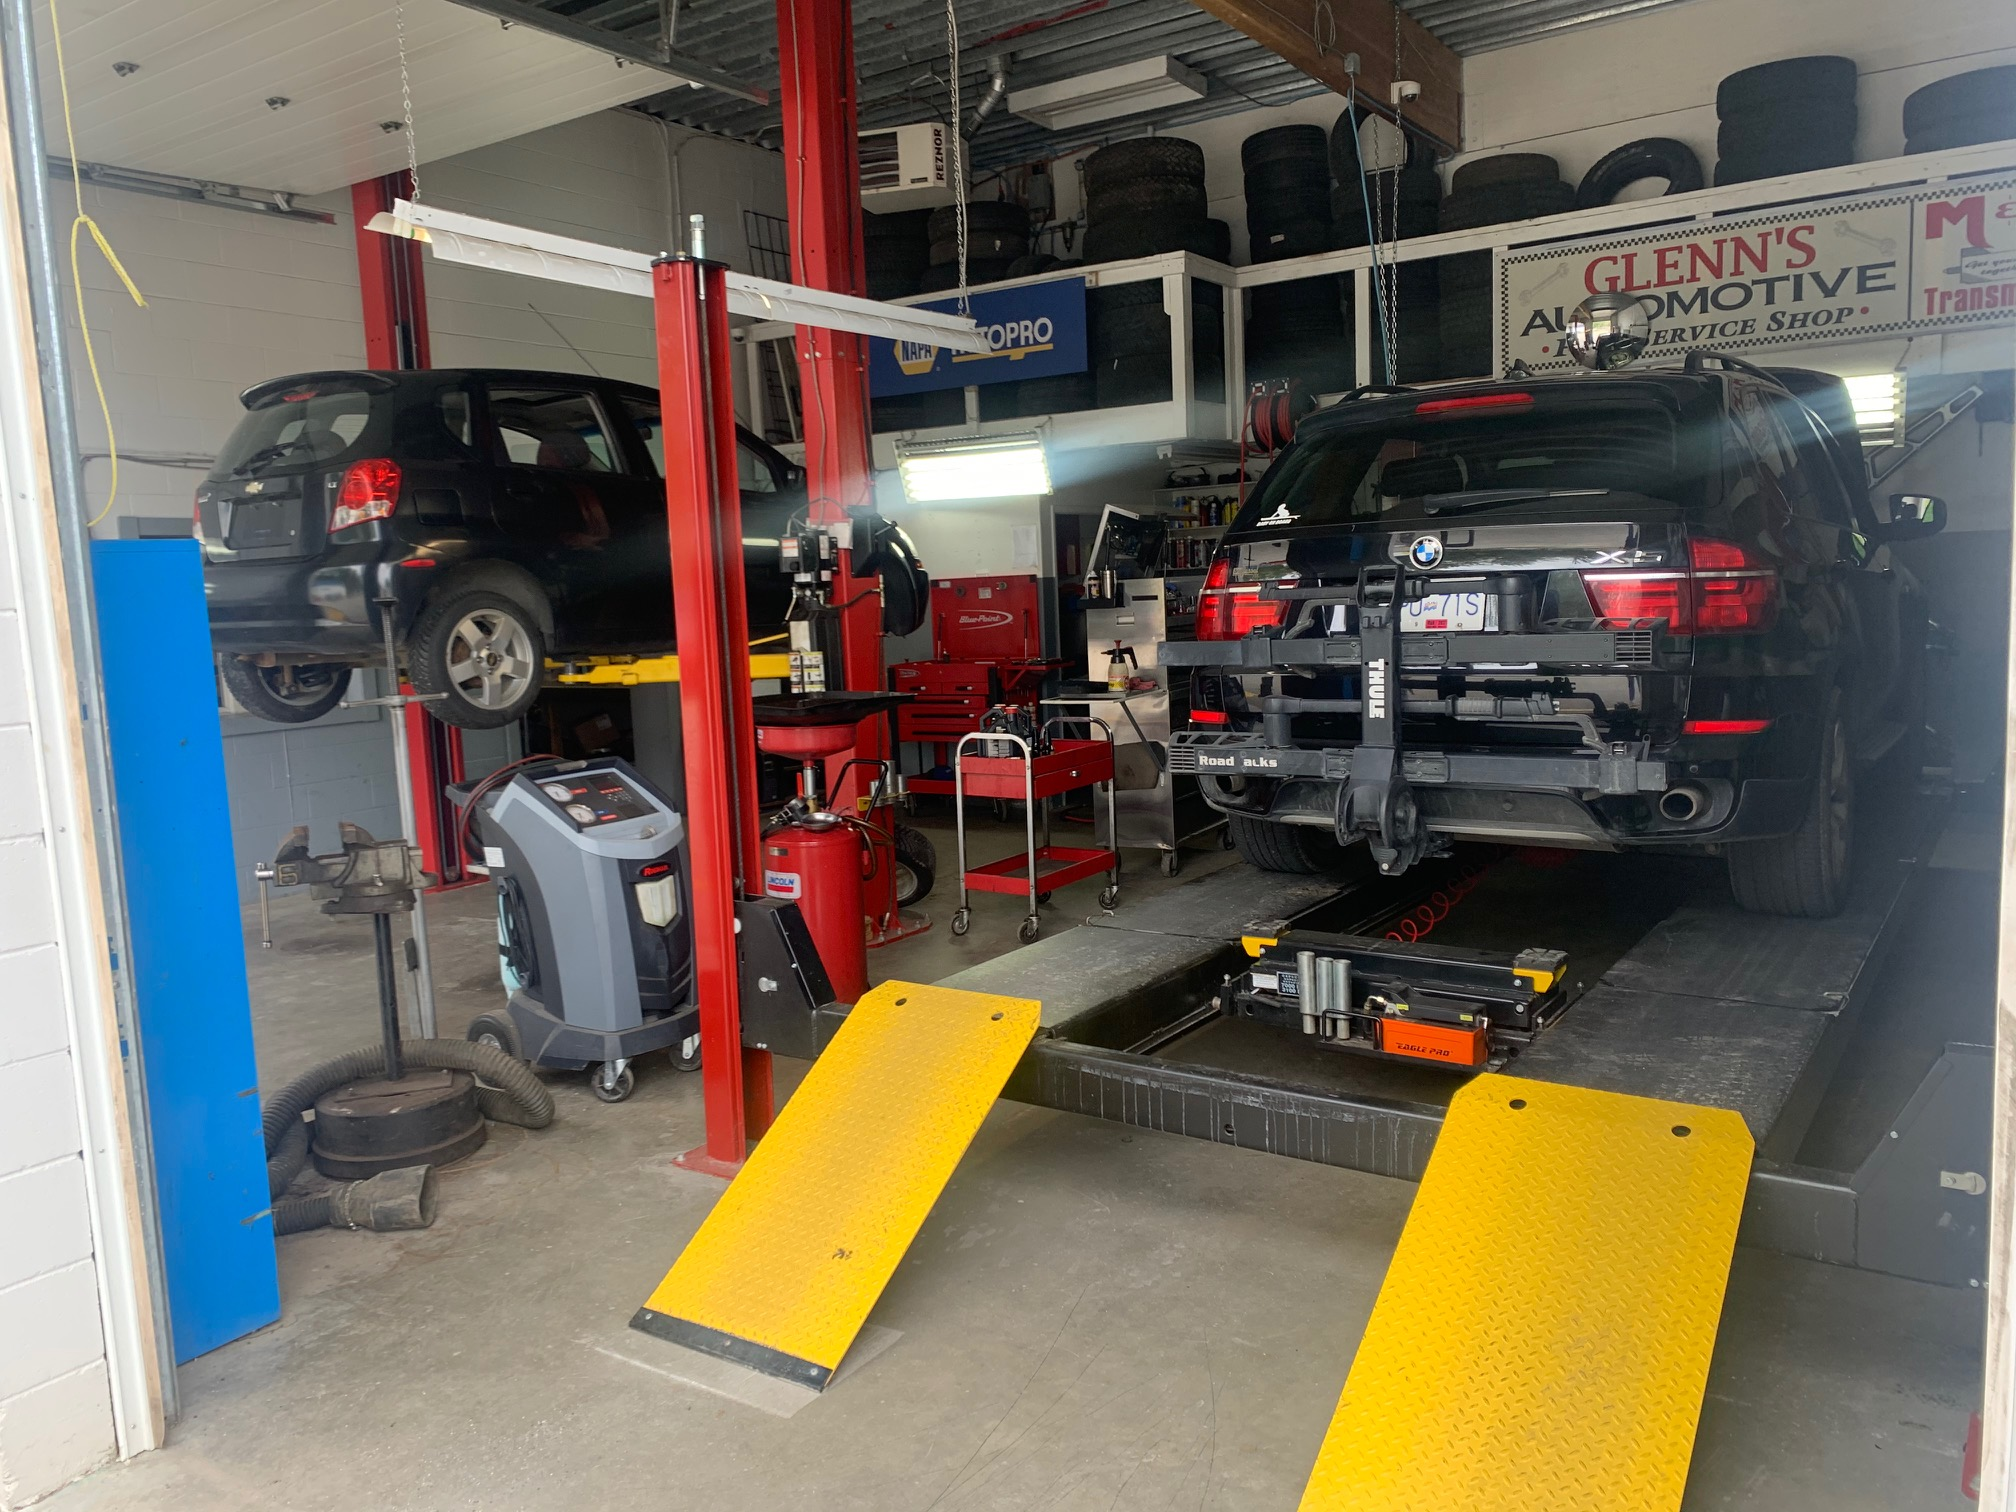 Glenn's Automotive & Transmission Services